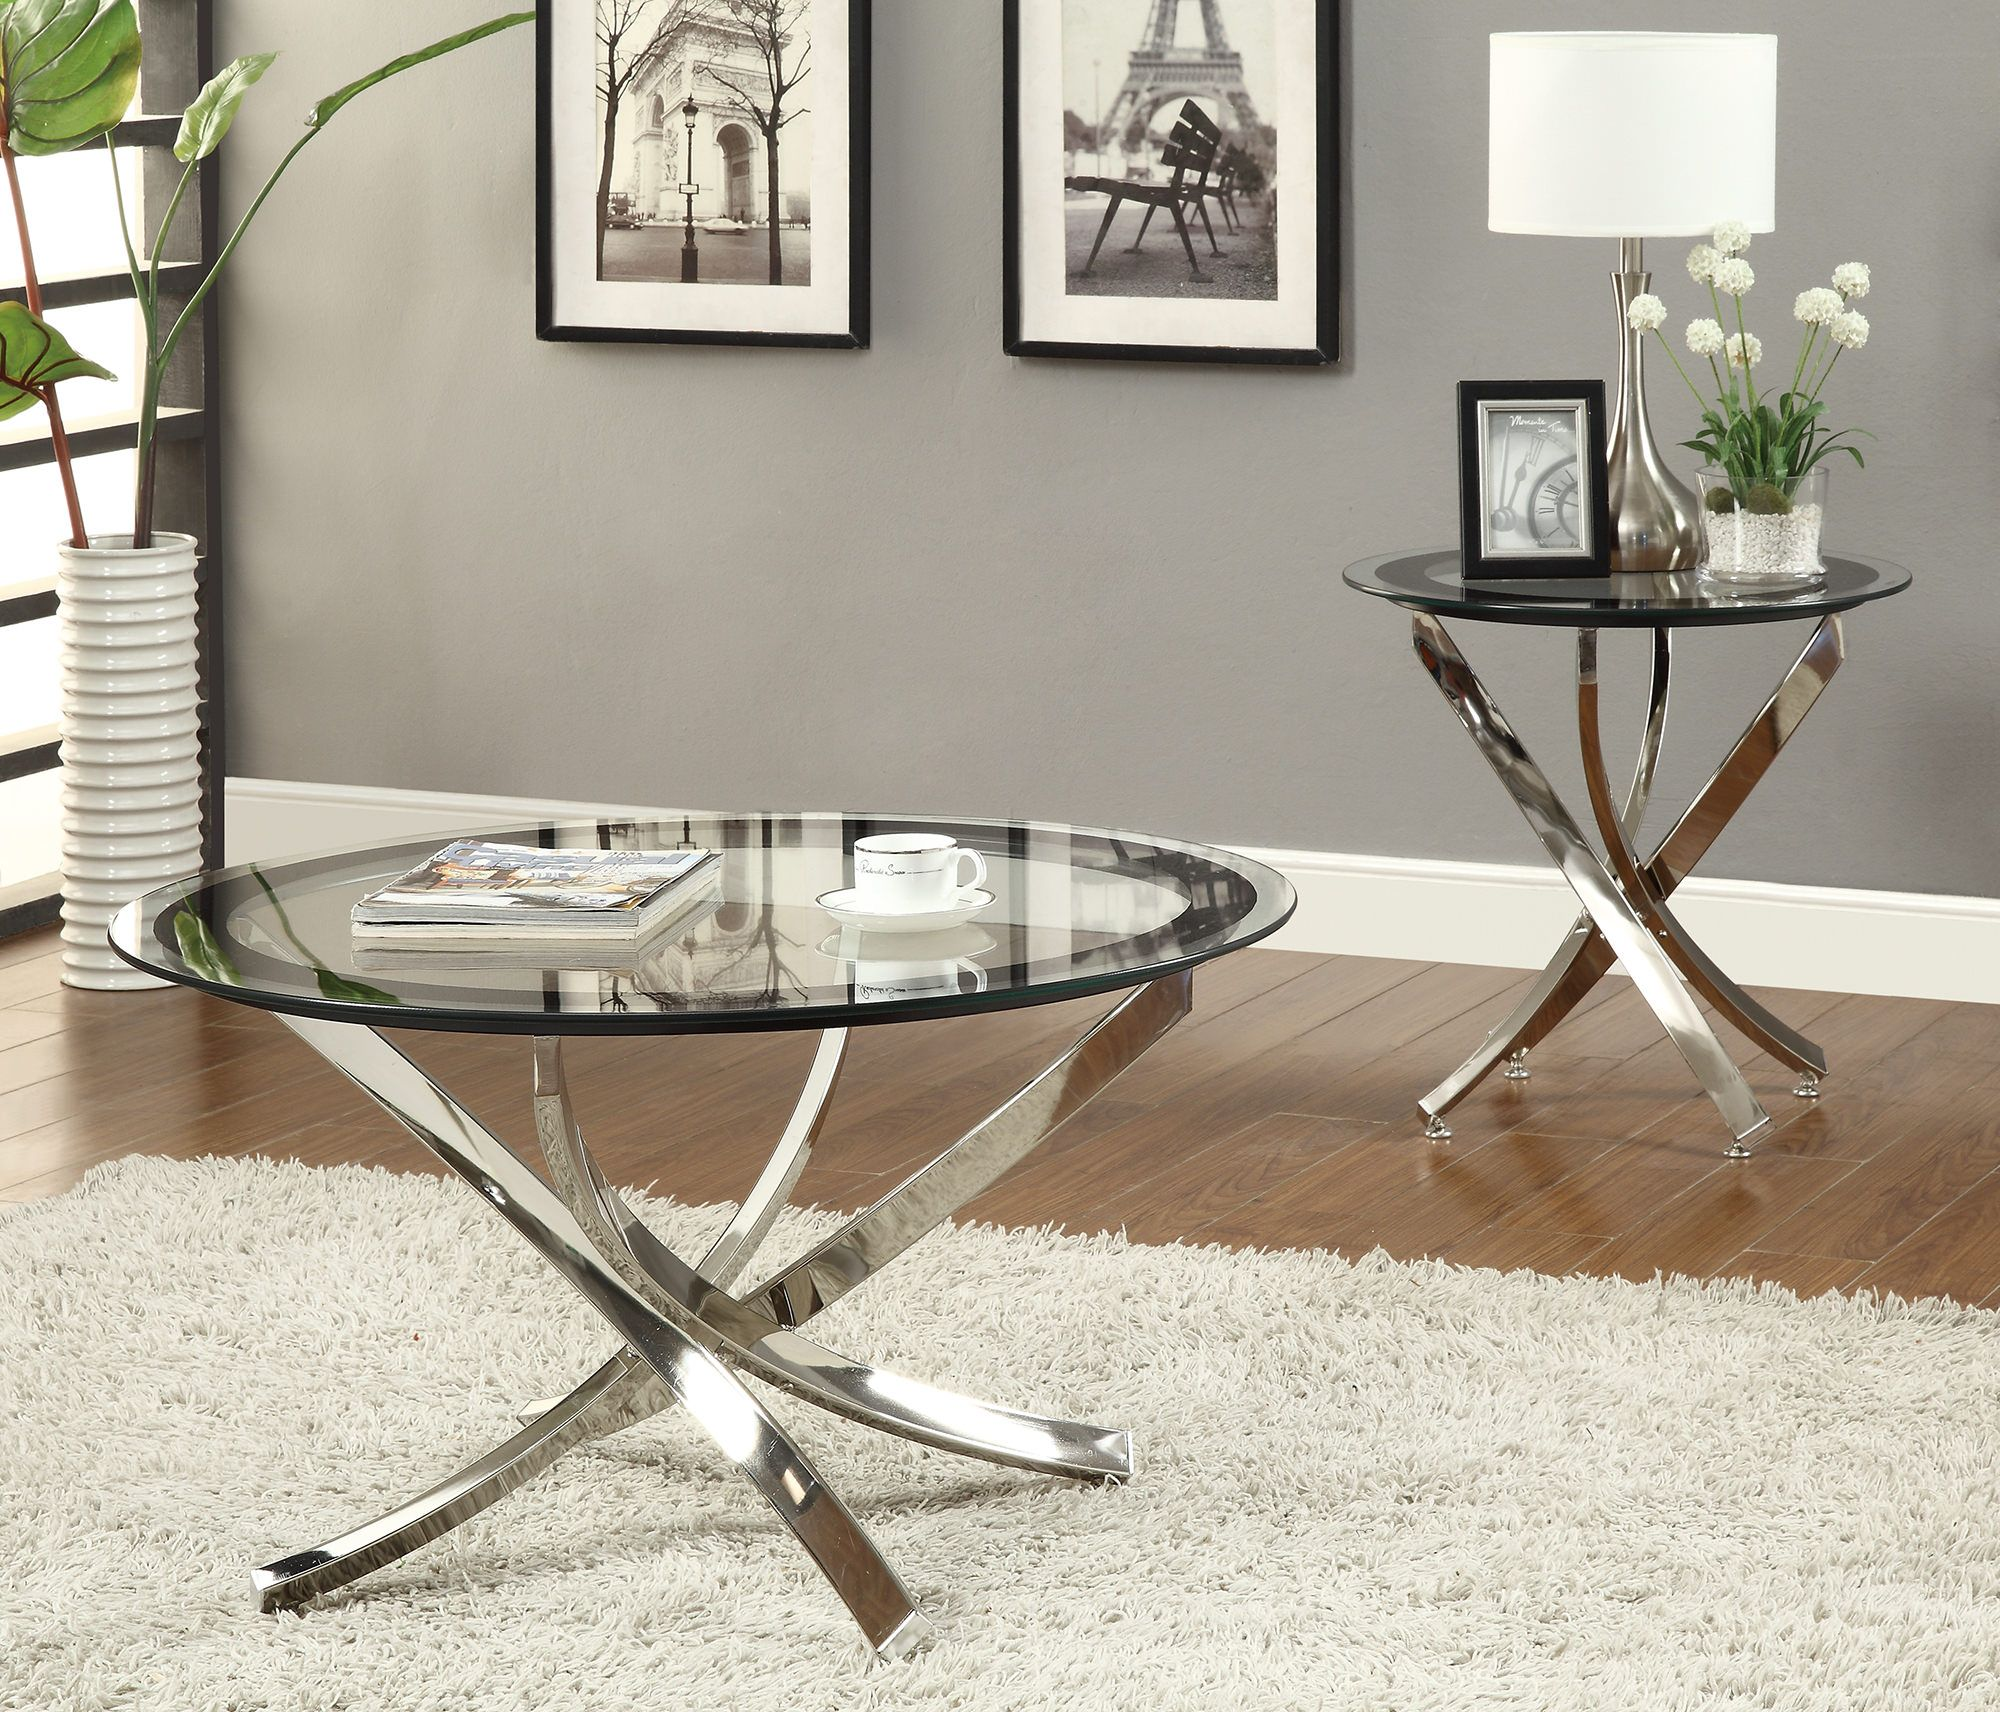 cocktail table tempered glass top home vision board elegant coffee tables and end round small side set built dining room replacement for over couch arm rustic wood entry ethan